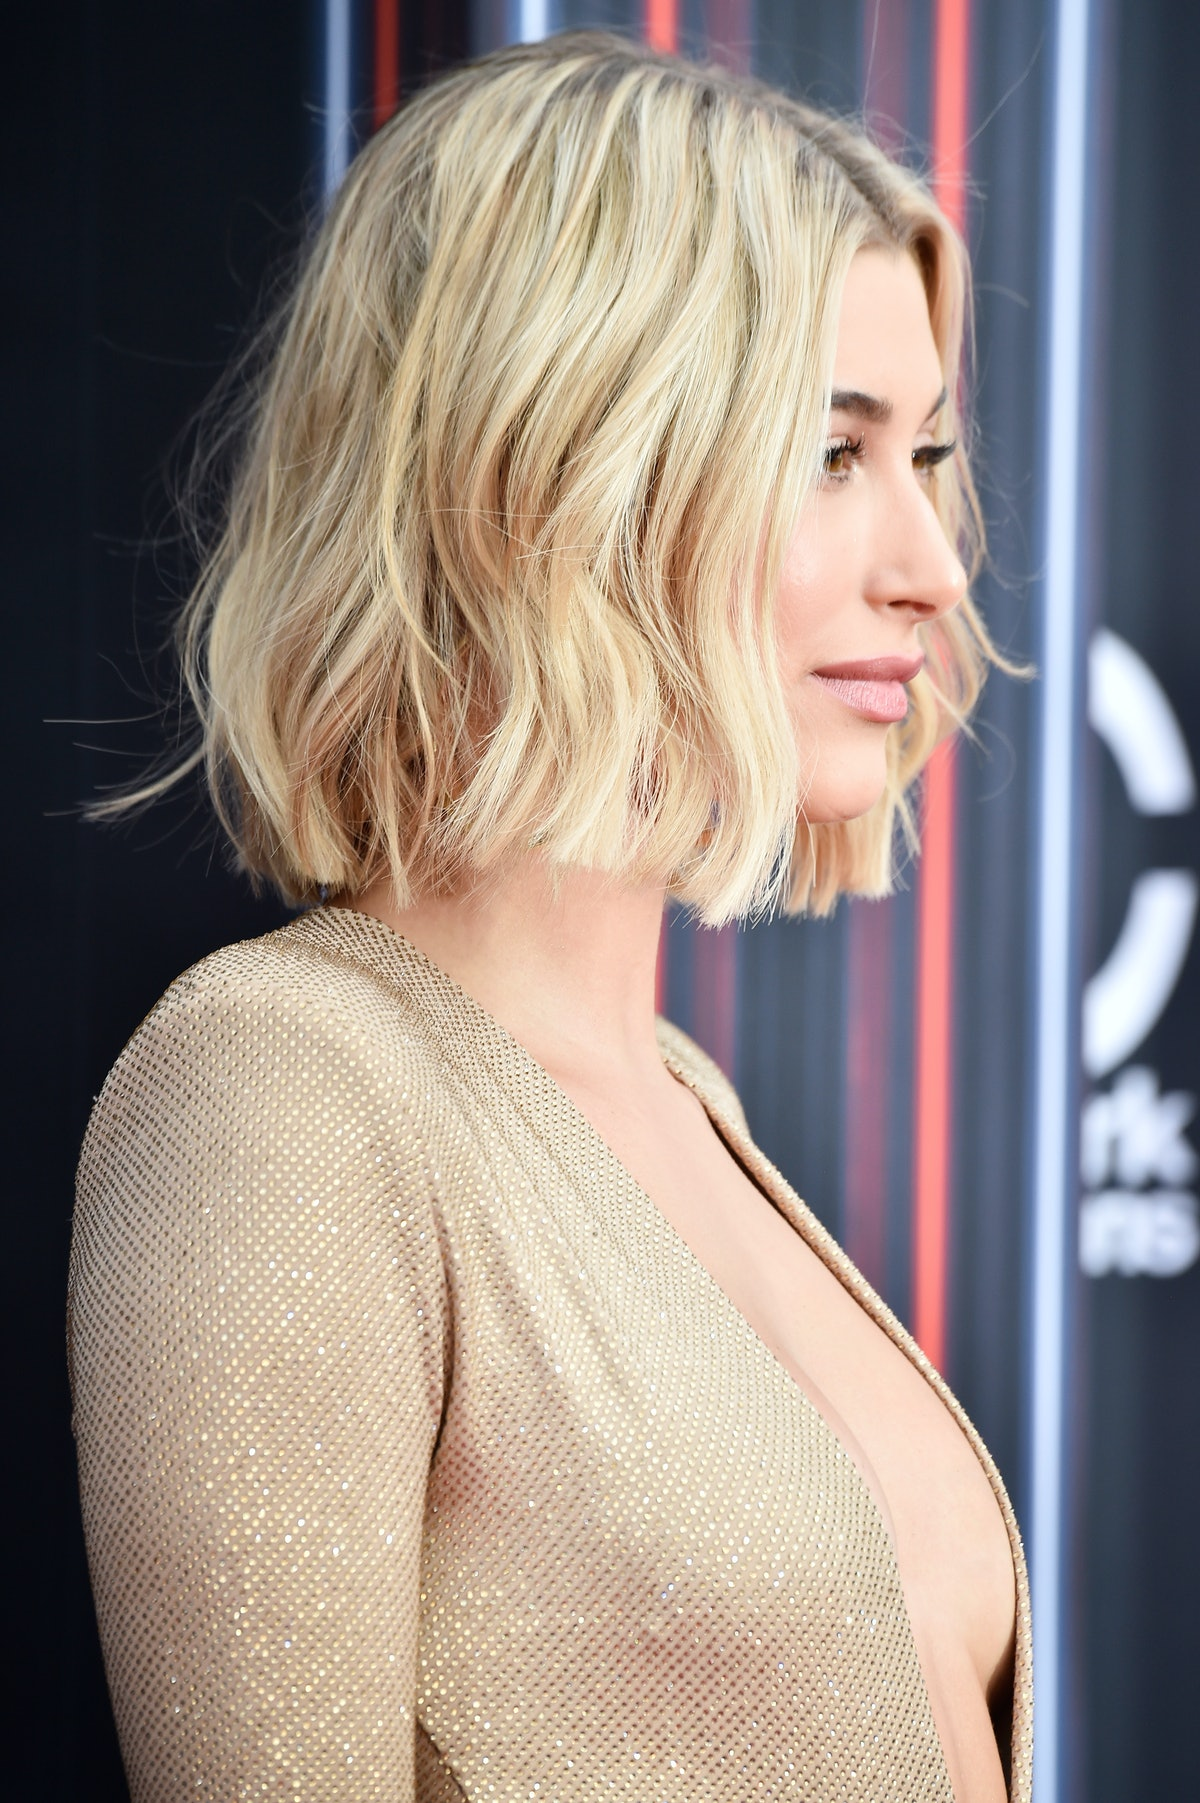 Hair Style Trends For 2019: These 2019 Haircut Trends Are About To Make This Year Even